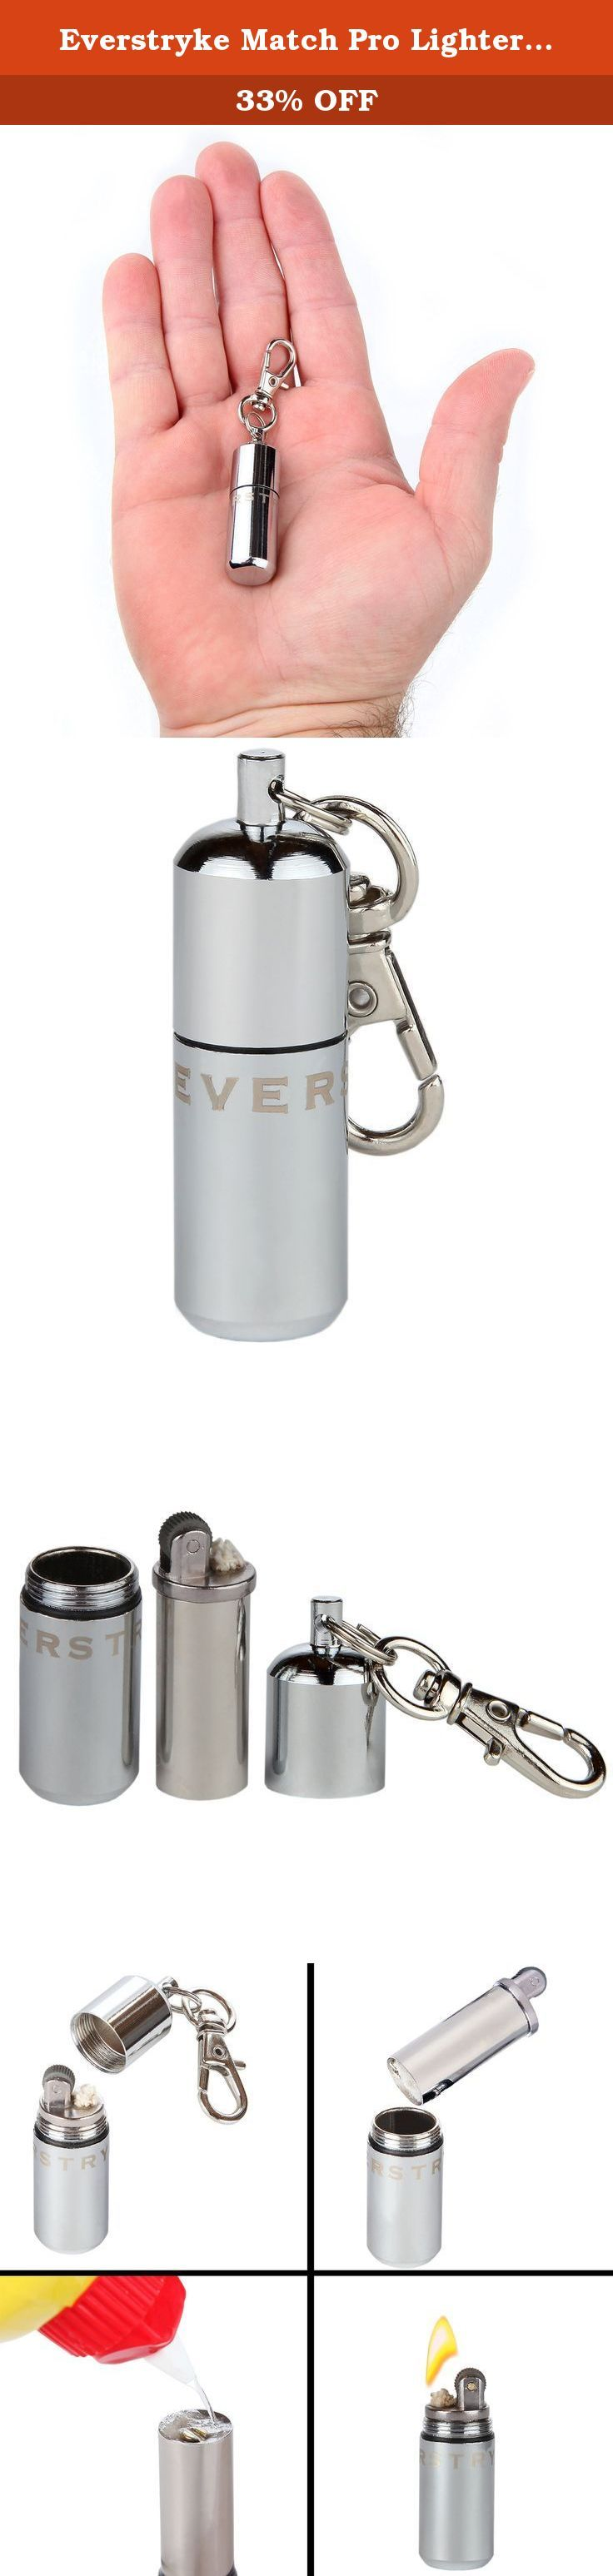 Everstryke Match Pro Lighter - Waterproof Fire Starter Especially for Survival and Emergency Use. This clever tool is an invaluable, possibly life-saving utensil that is equally at home in your wallet, purse, bug-out bag, toolbox, or even the kitchen drawer. The all new design is made out of solid stainless steel, making it even more rough, tough, rugged, and ready for the trail. The improved design holds double the fuel of the original Everstryke match and believe it or not, we've…